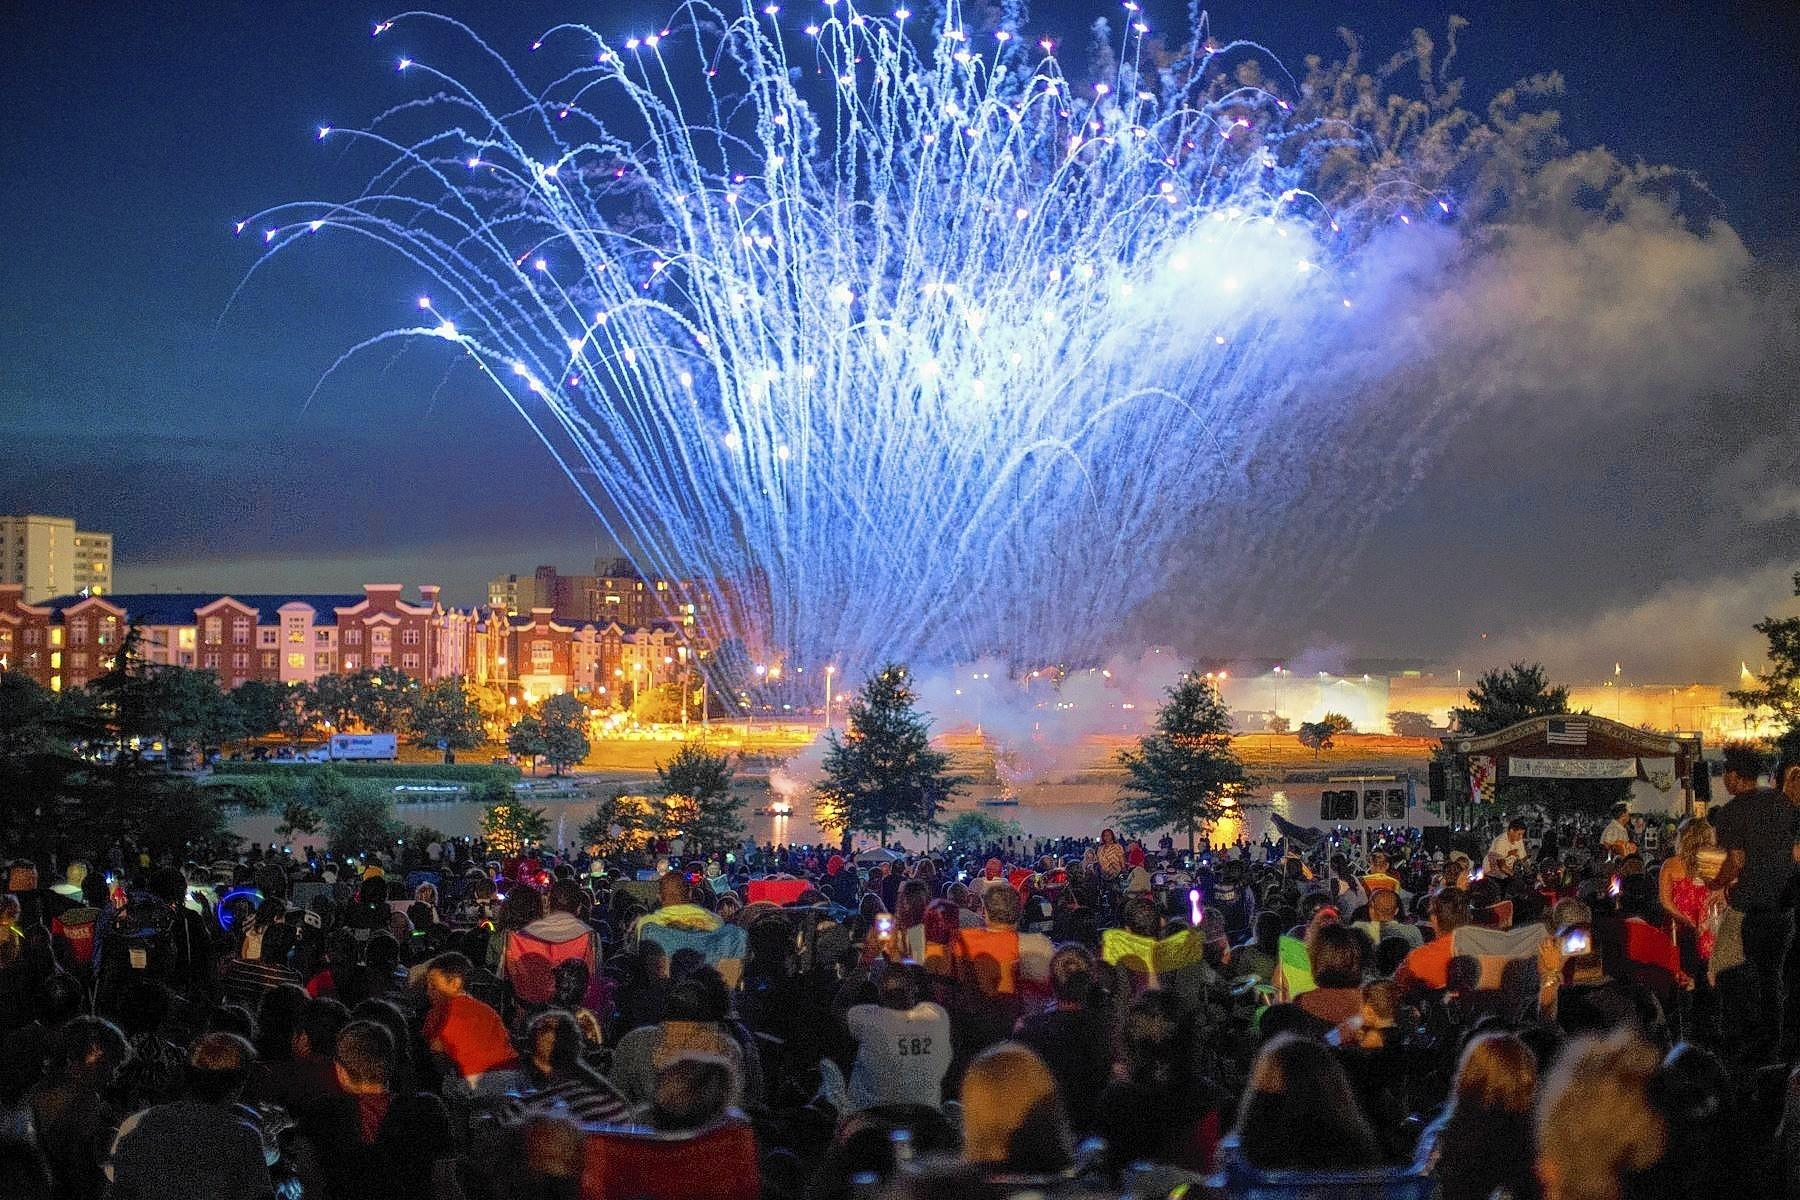 Fireworks light up the neighborhood around Laurel Lakes July 5, which crowds gather to watch at Granville Gude Park.